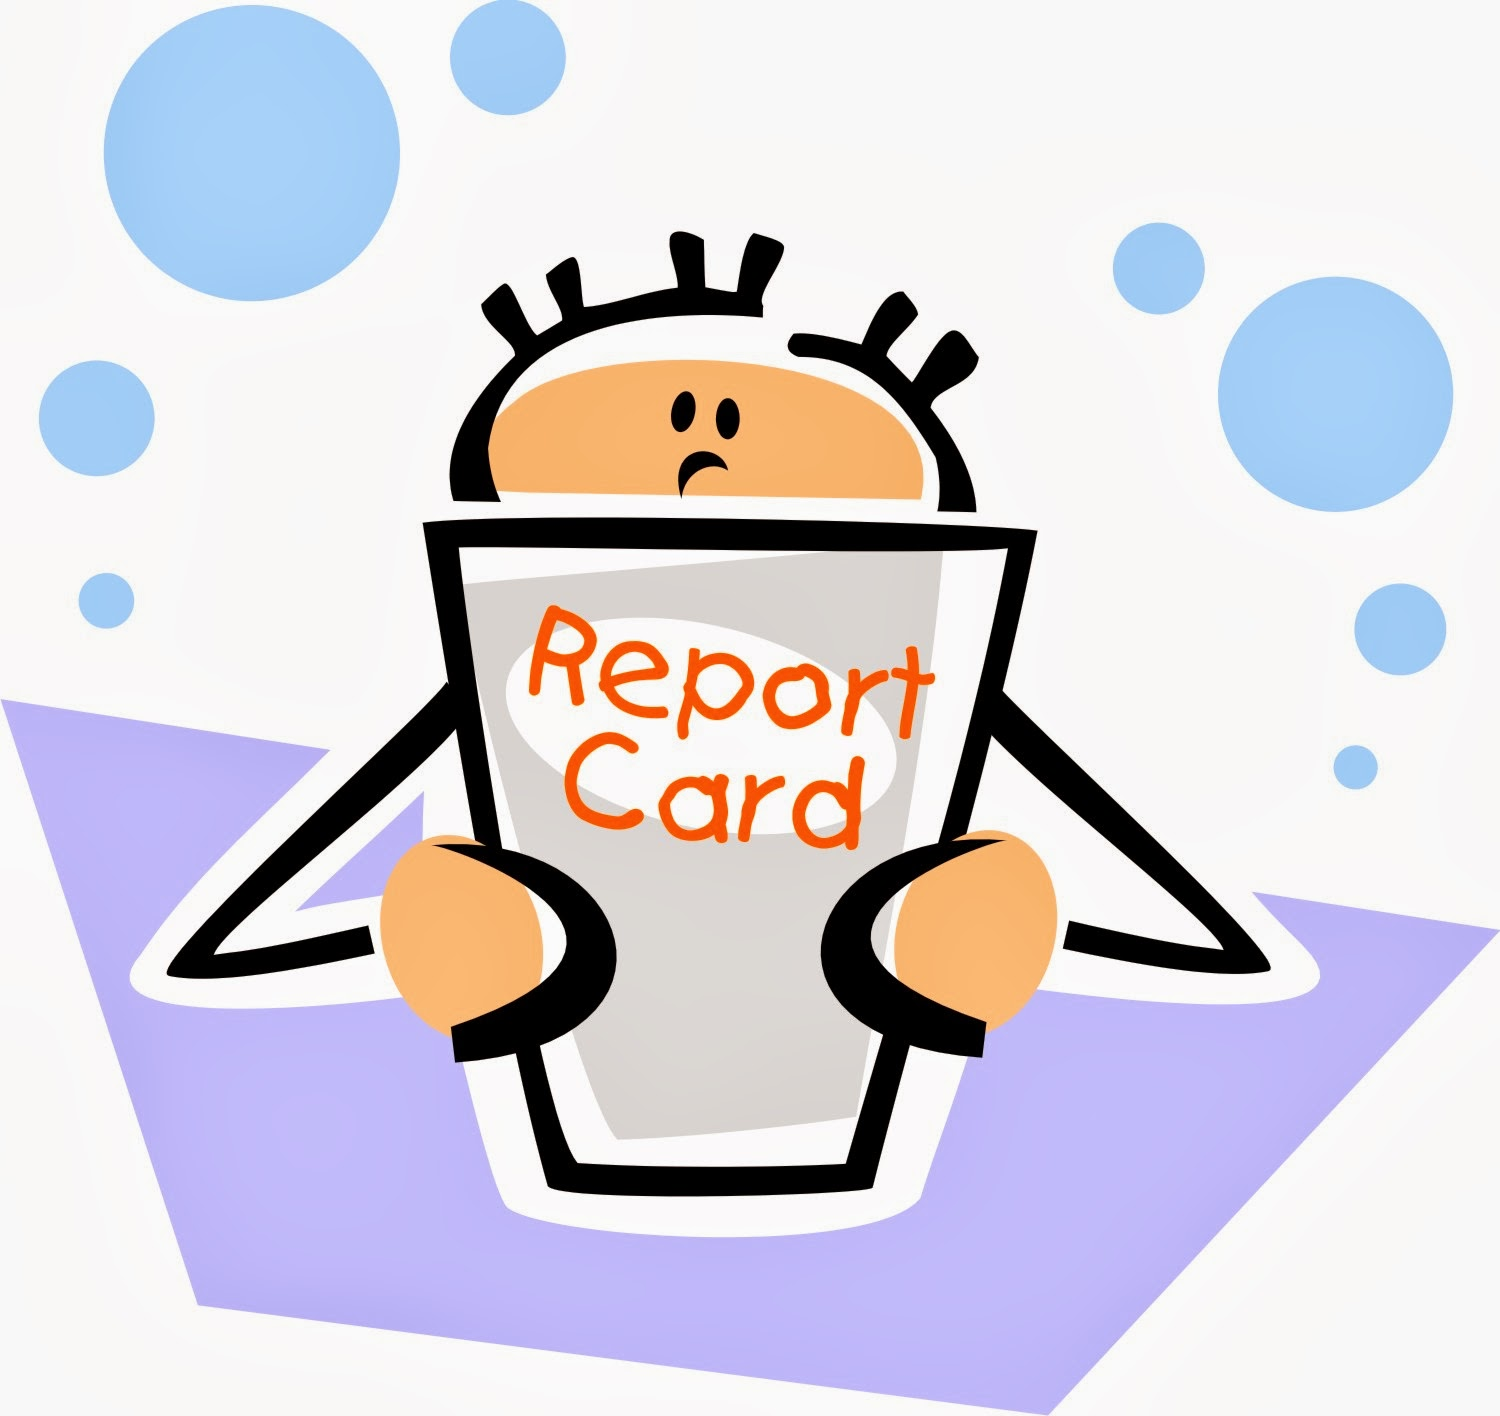 Bad Report Card Clipart Report Card Clip Art Viewing #0Mi5gd.